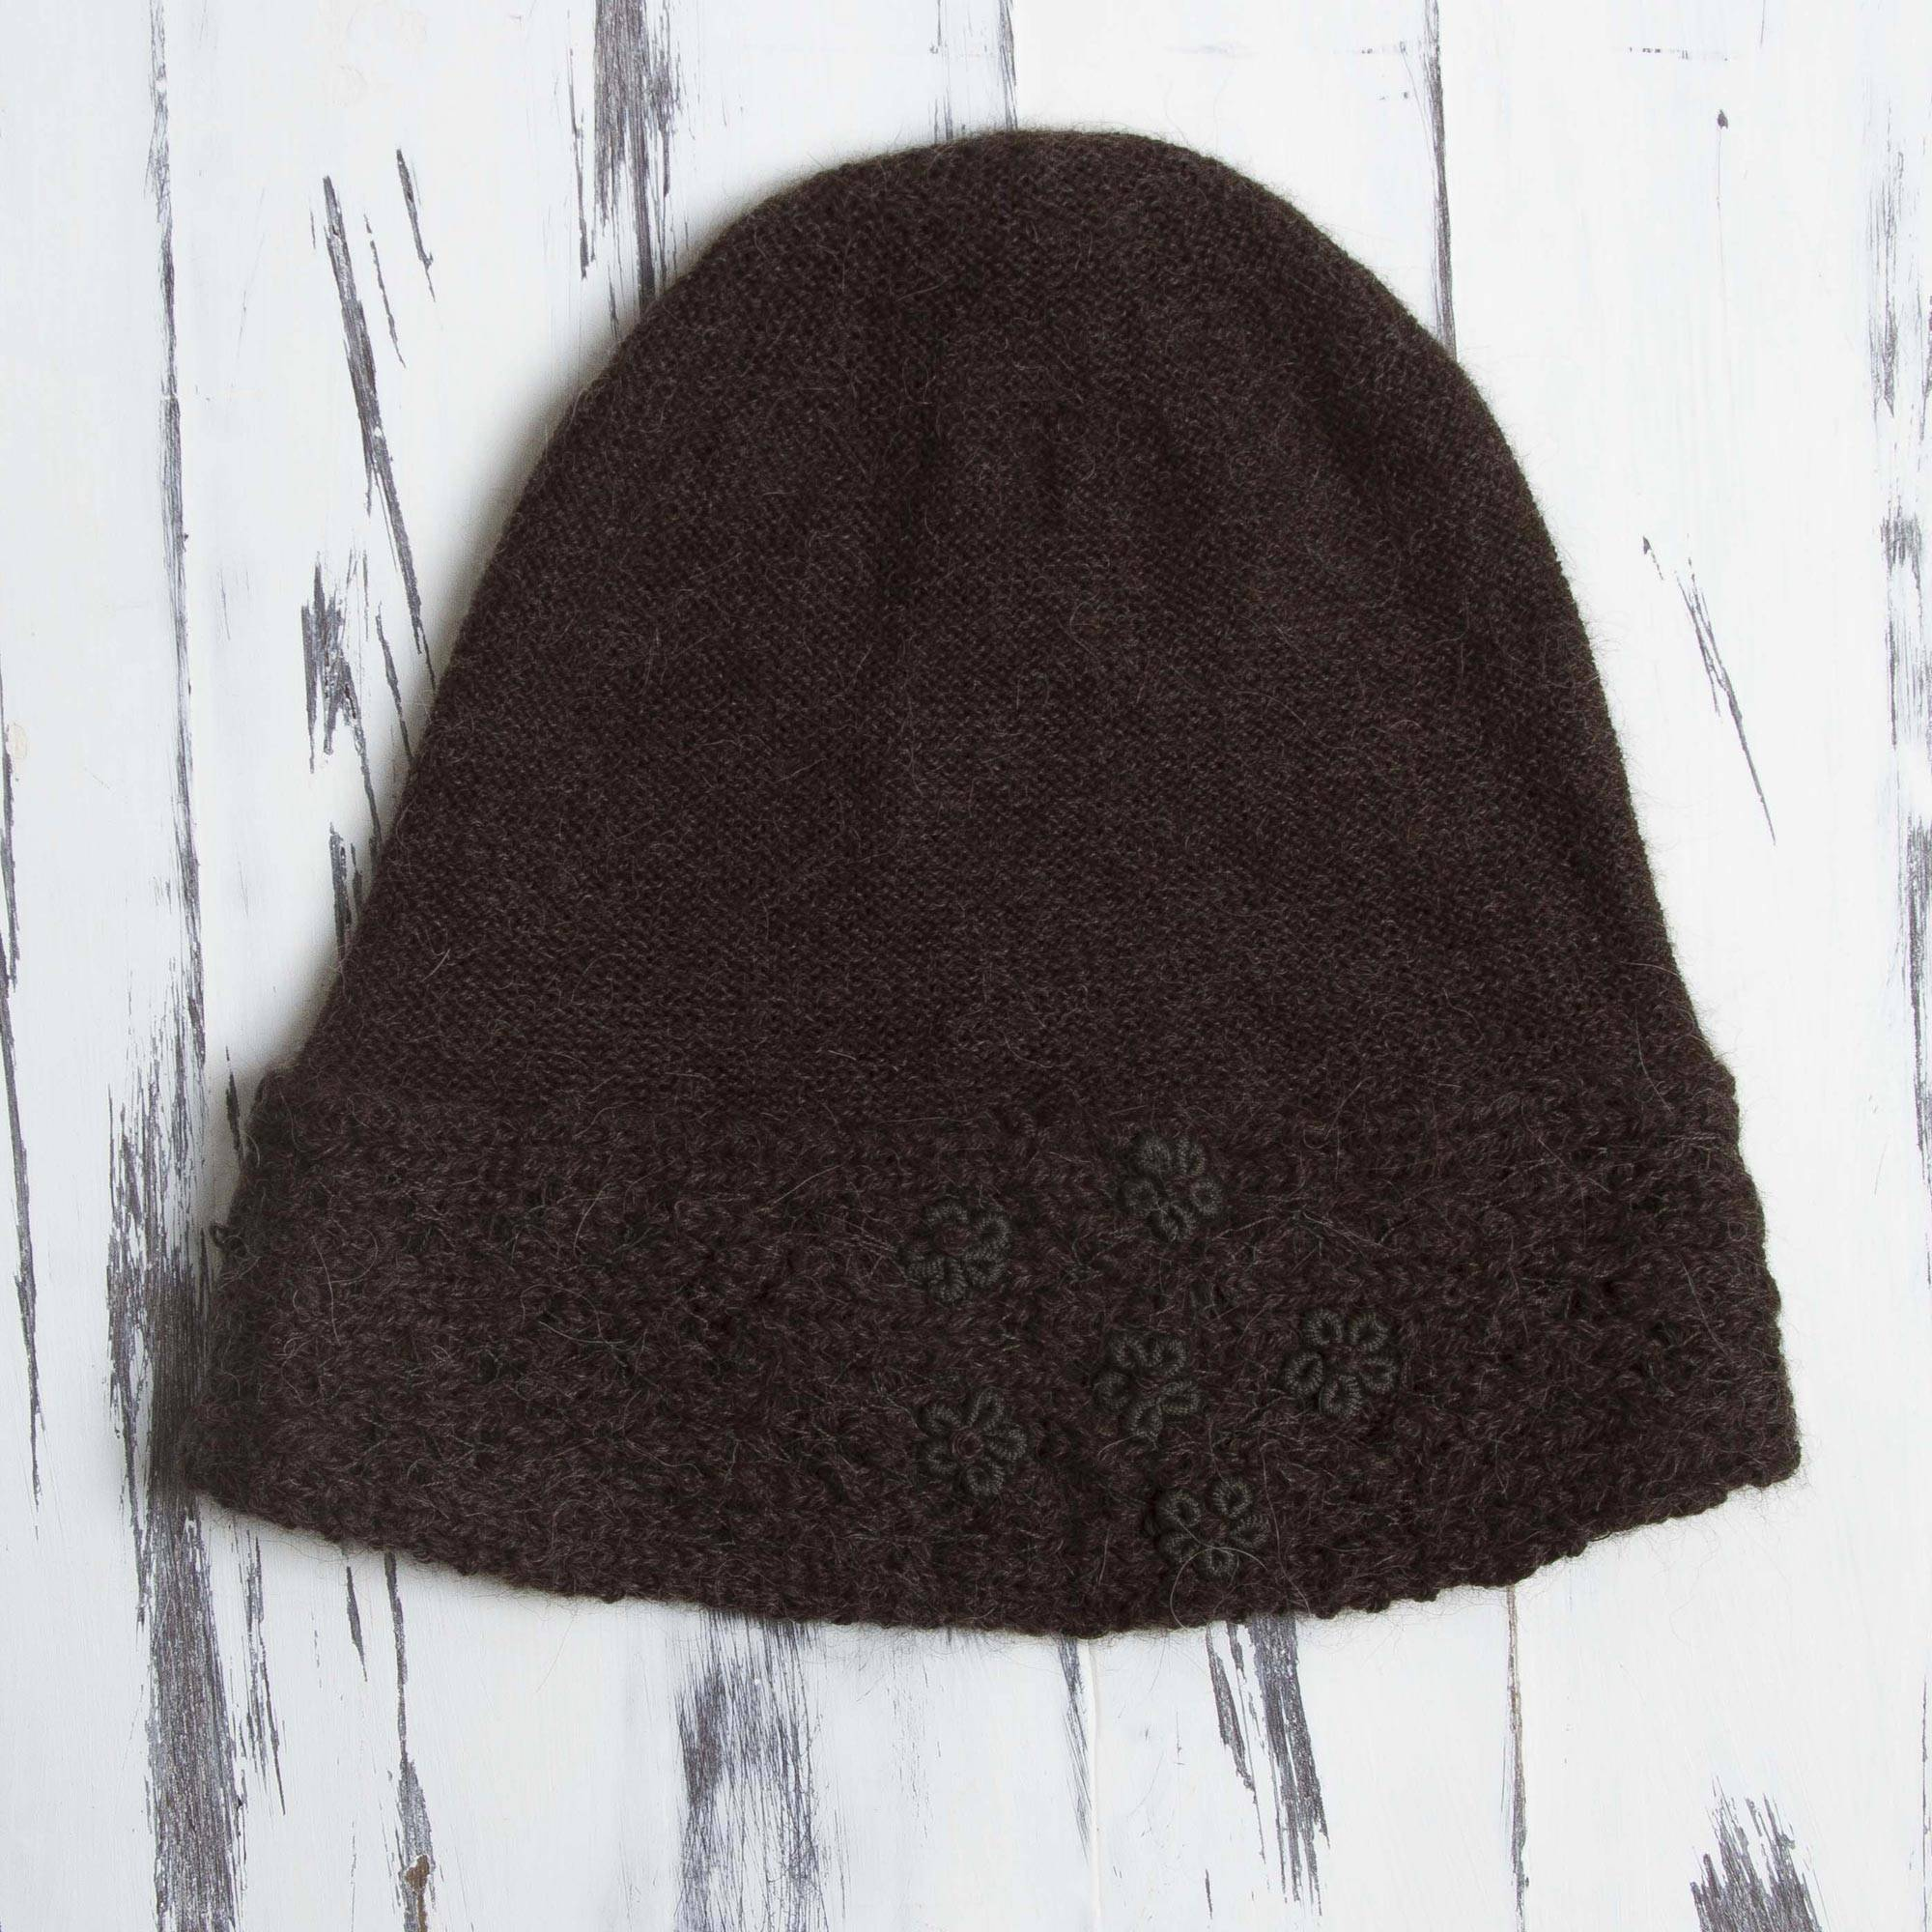 c6a147a8b83 100% Alpaca Embroidered Floral Hat in Chocolate from Peru - Flowery ...